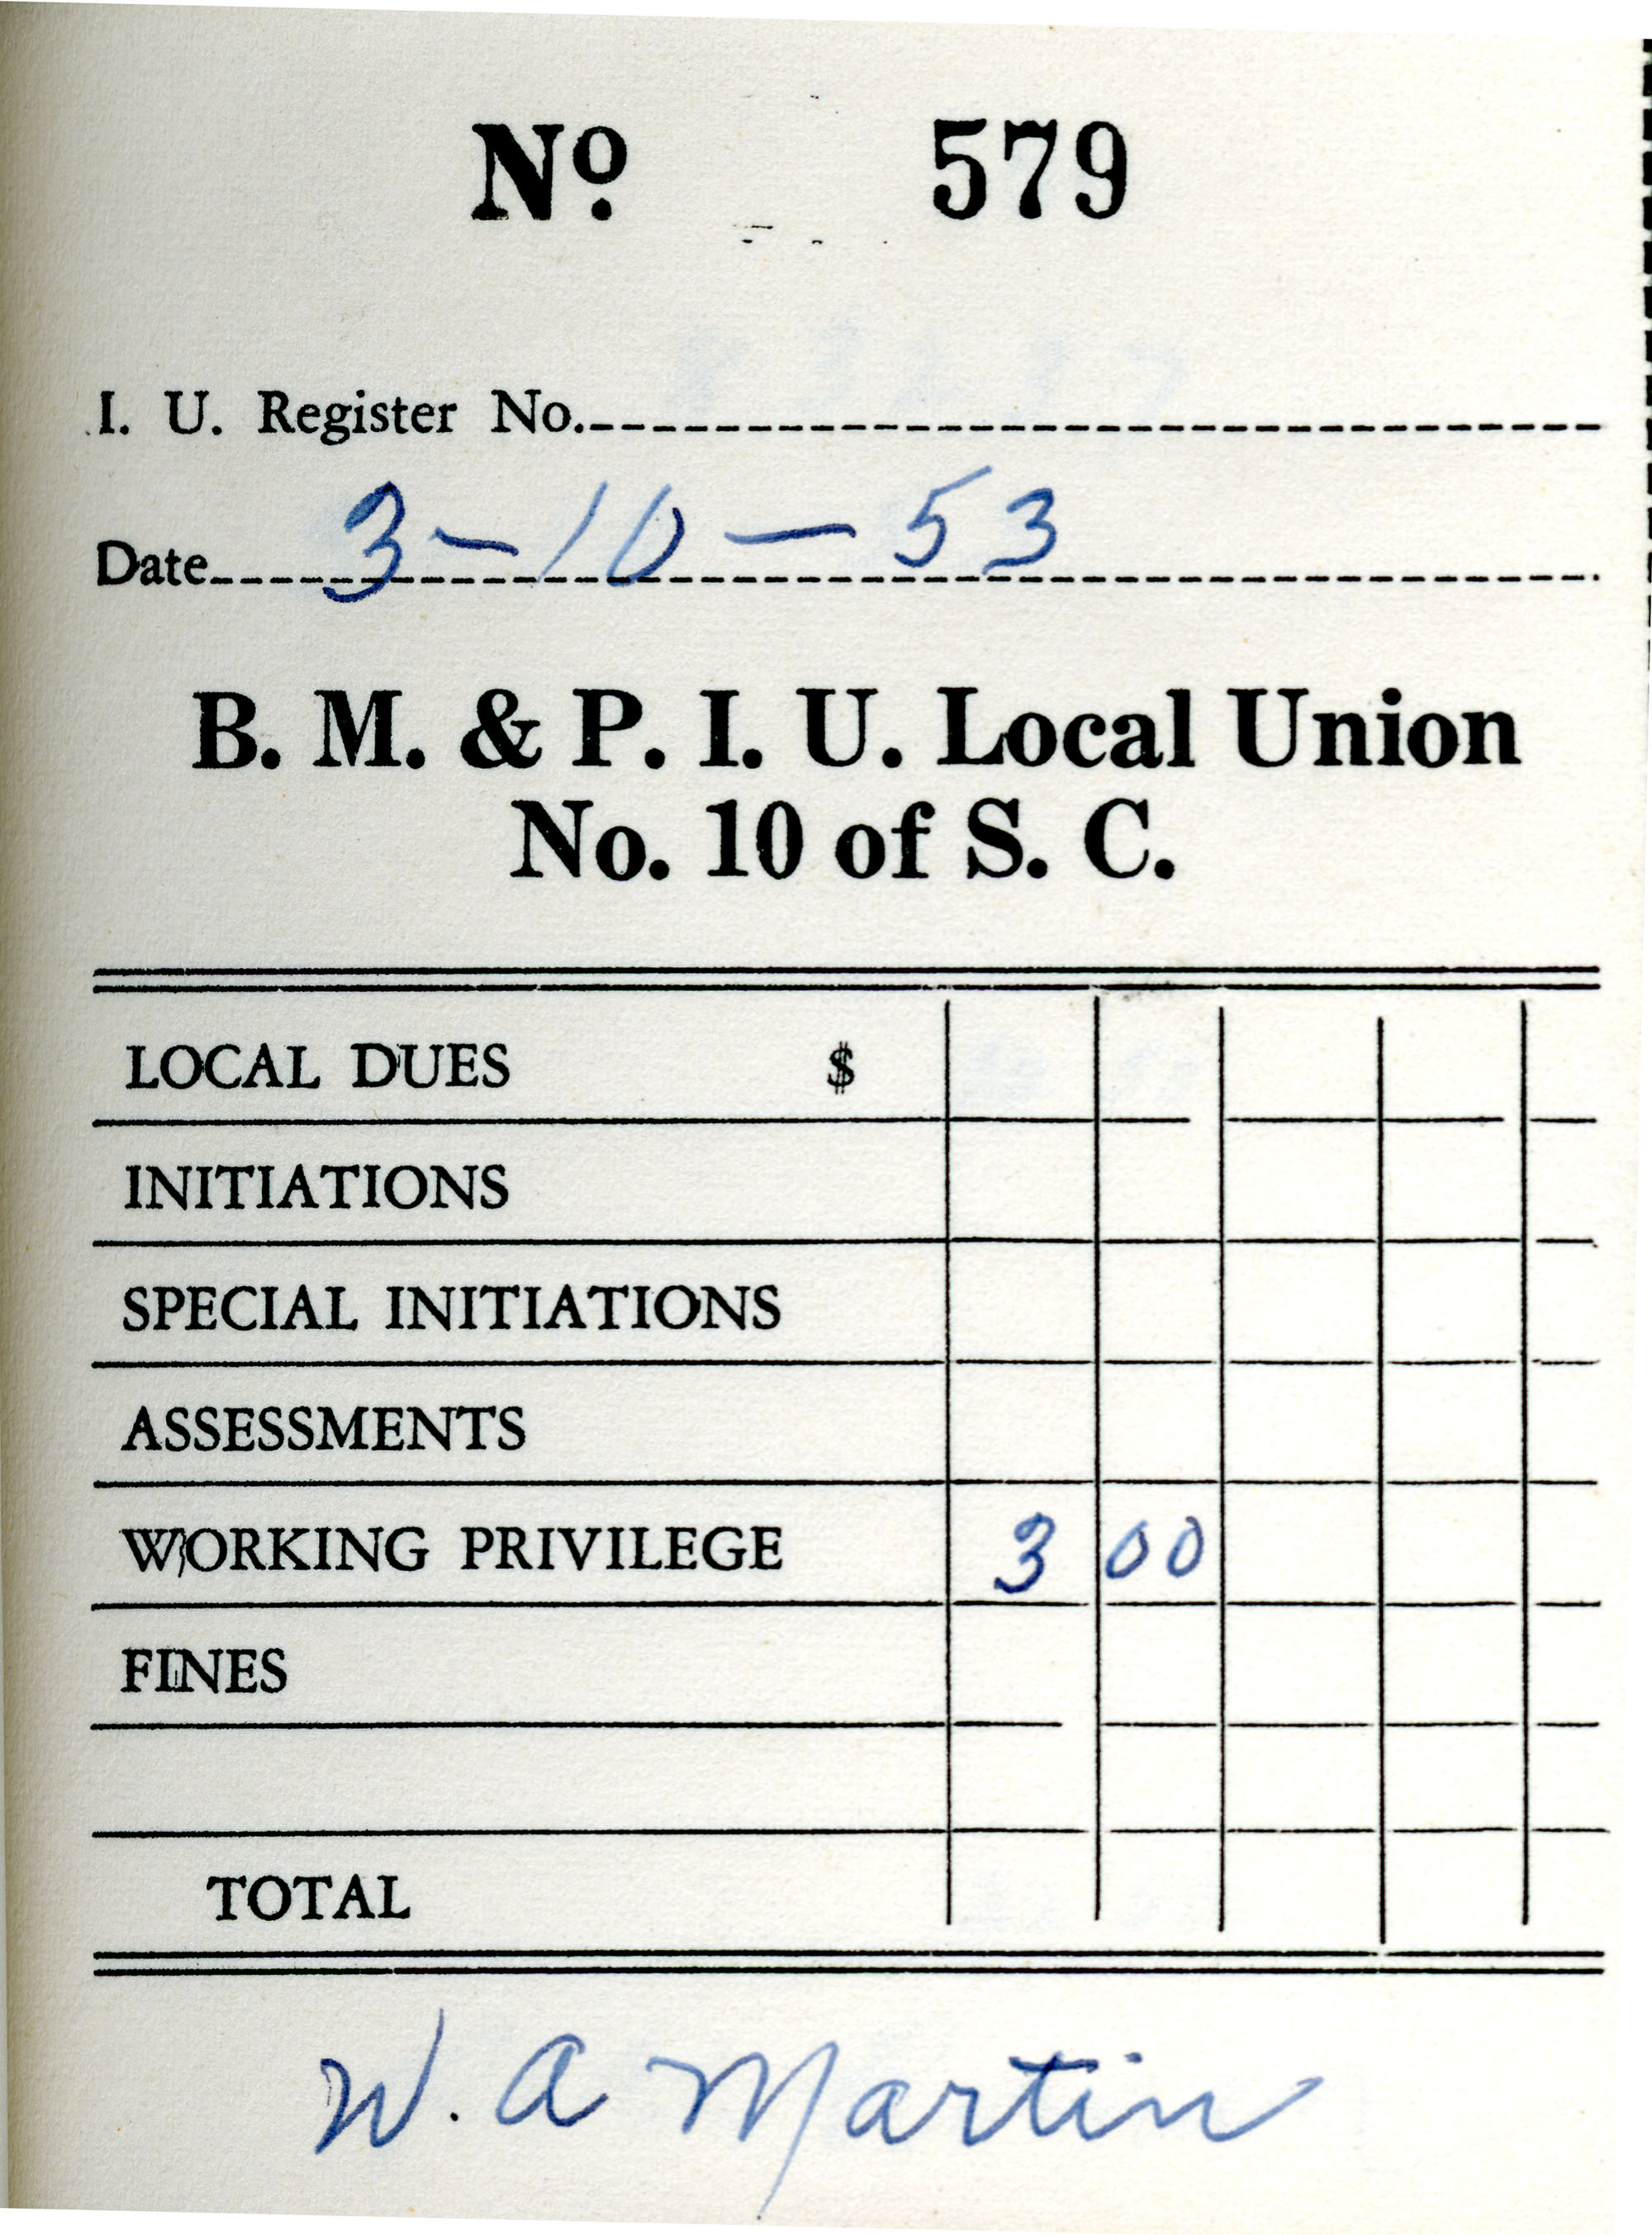 Receipt Book 1, Page 29